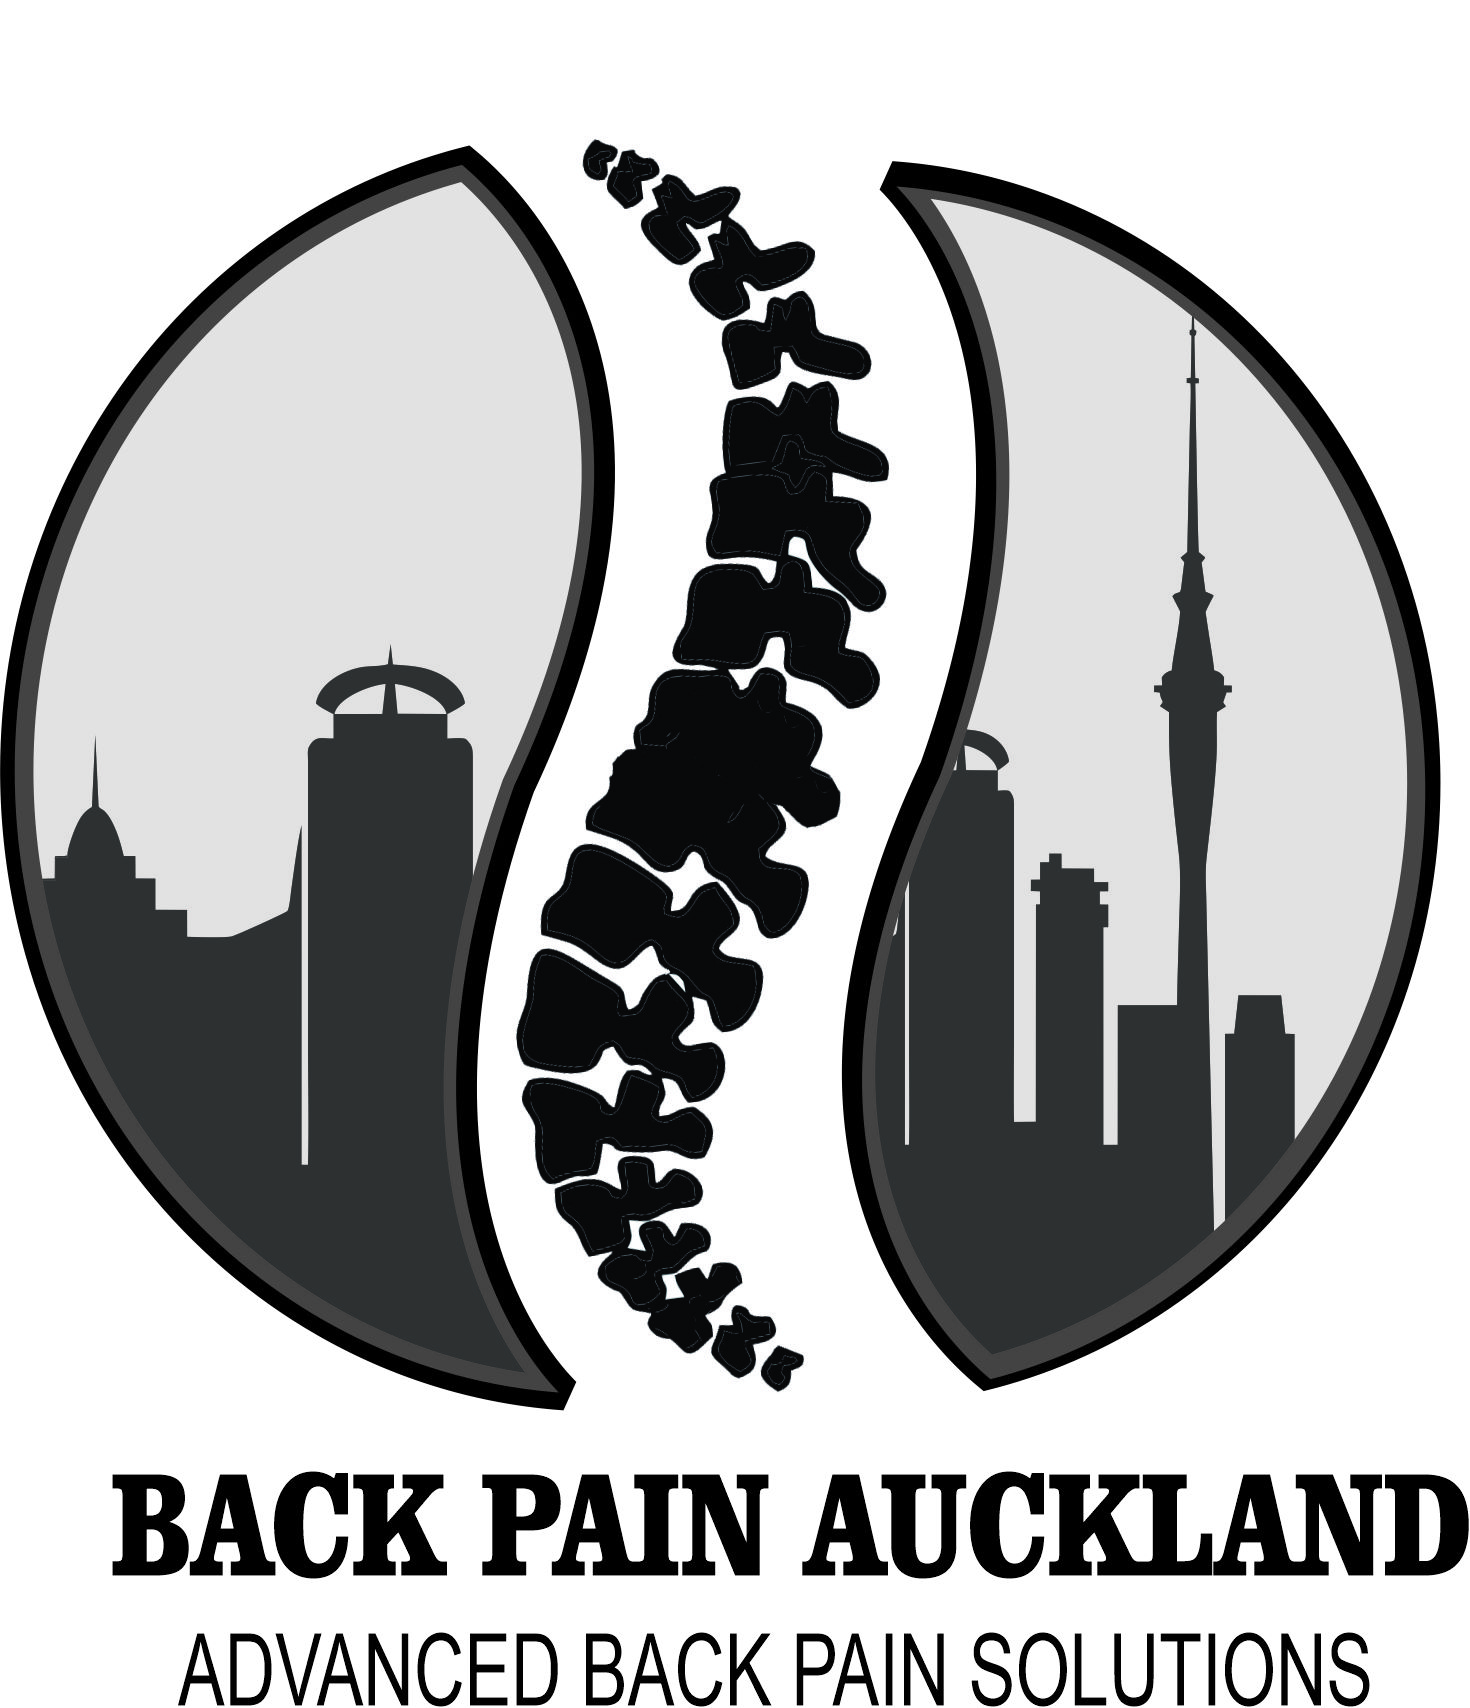 Back Pain Auckland